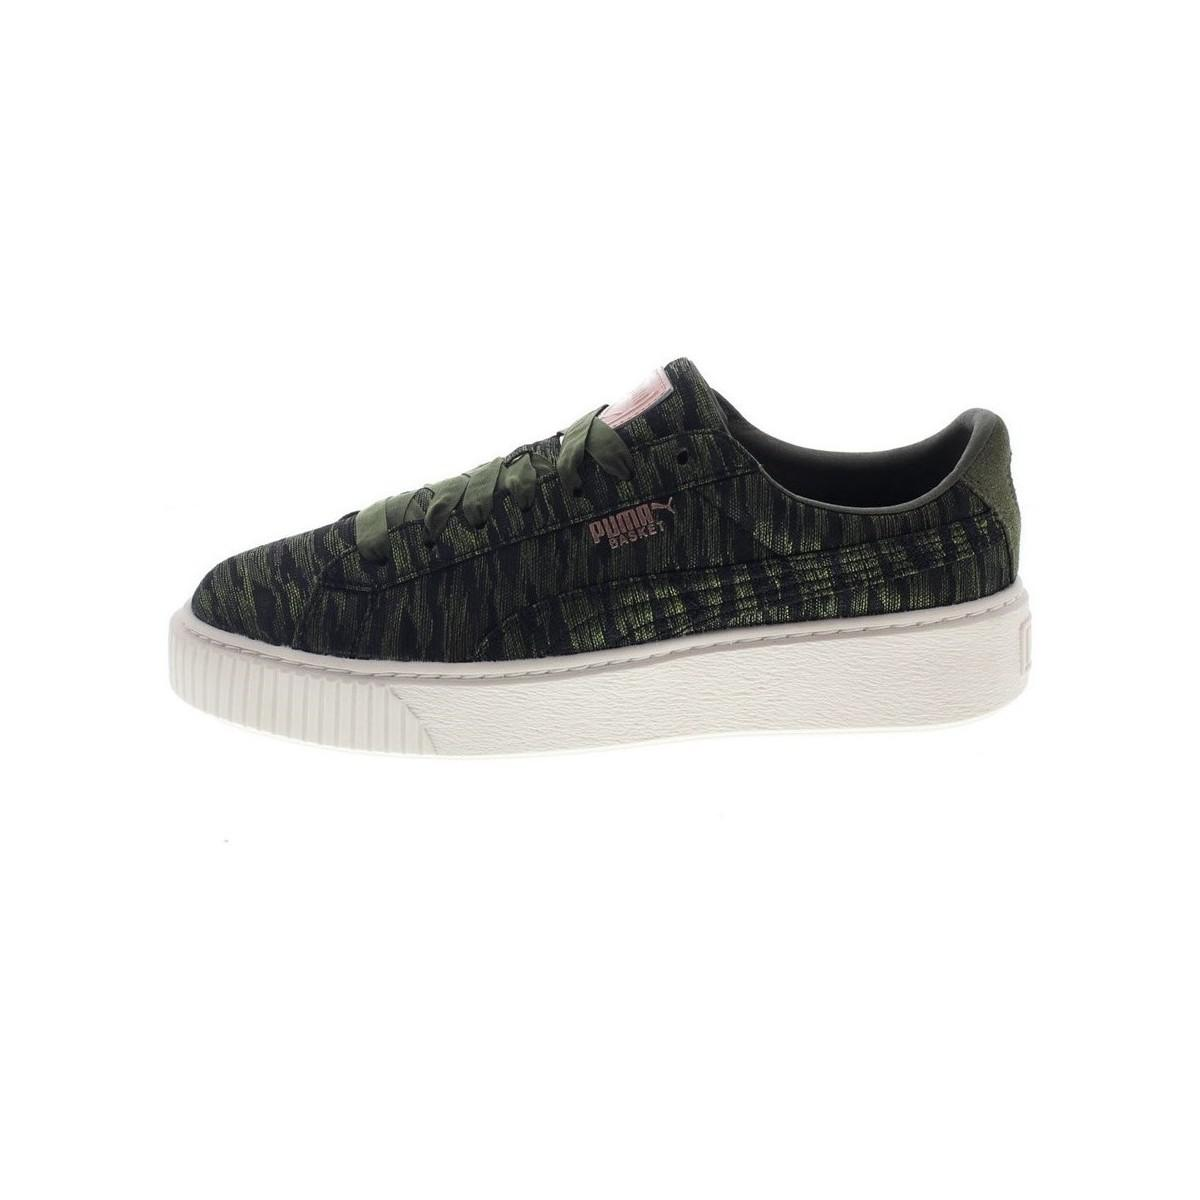 Puma Basket Platform Women s Shoes (trainers) In Multicolour in ... 186aff7aae4